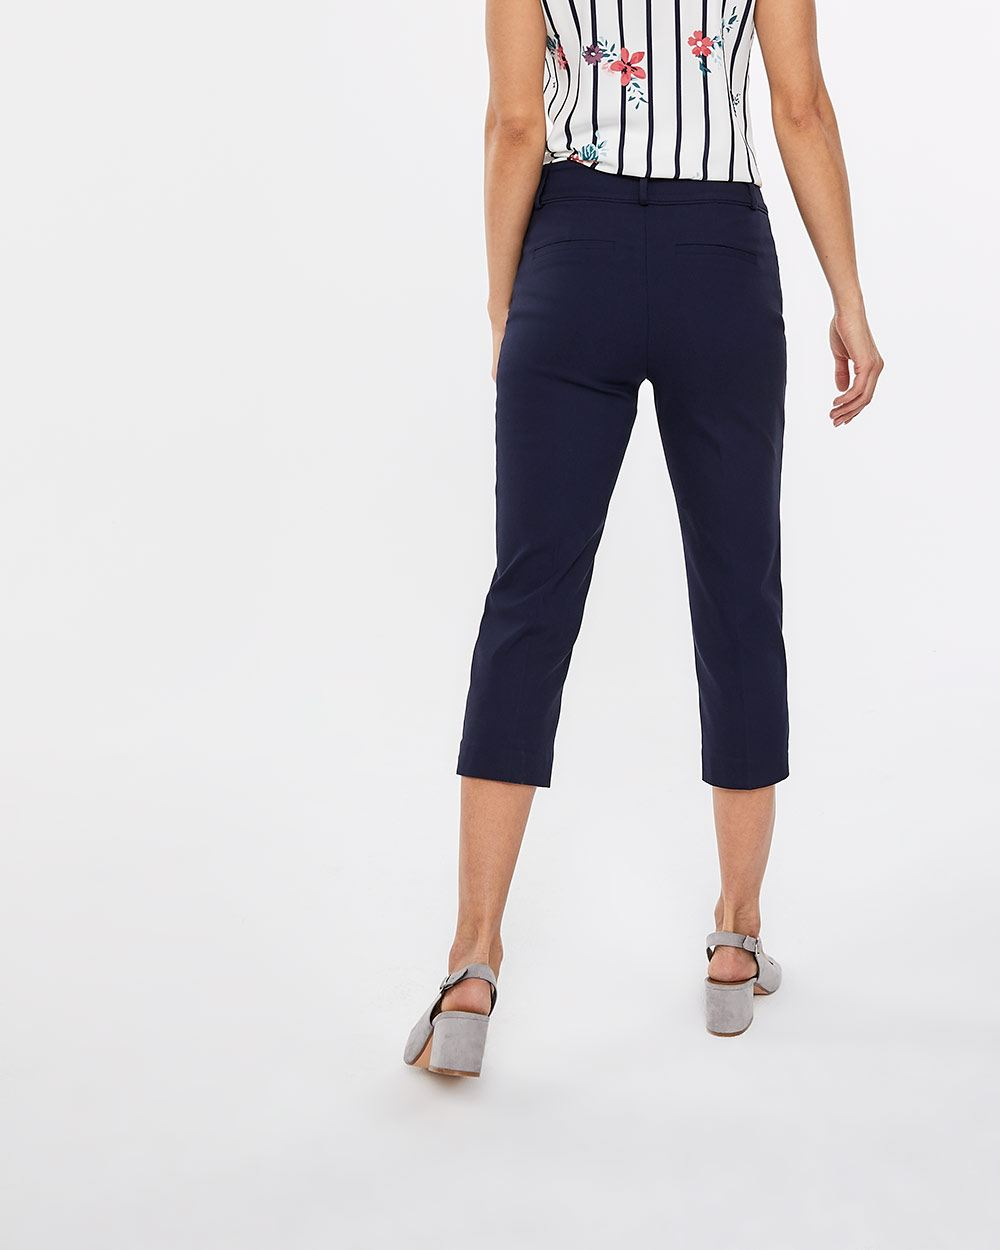 The Iconic Capri - Petite